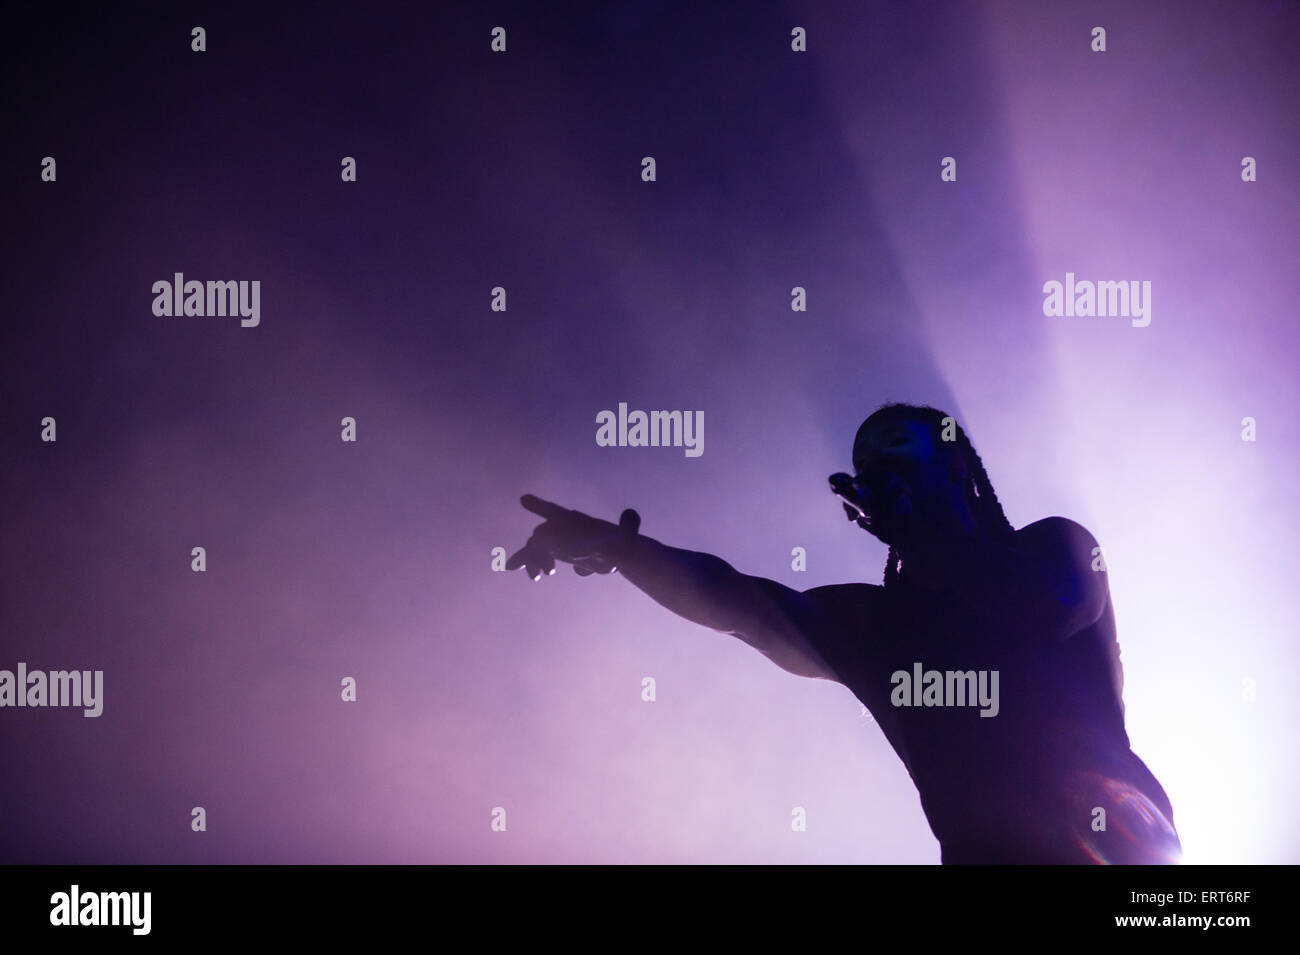 Singer Keith Palmer a.k.a. Maxim Reality of British band 'The prodigy' performs at Rock im Park music festival - Stock Image